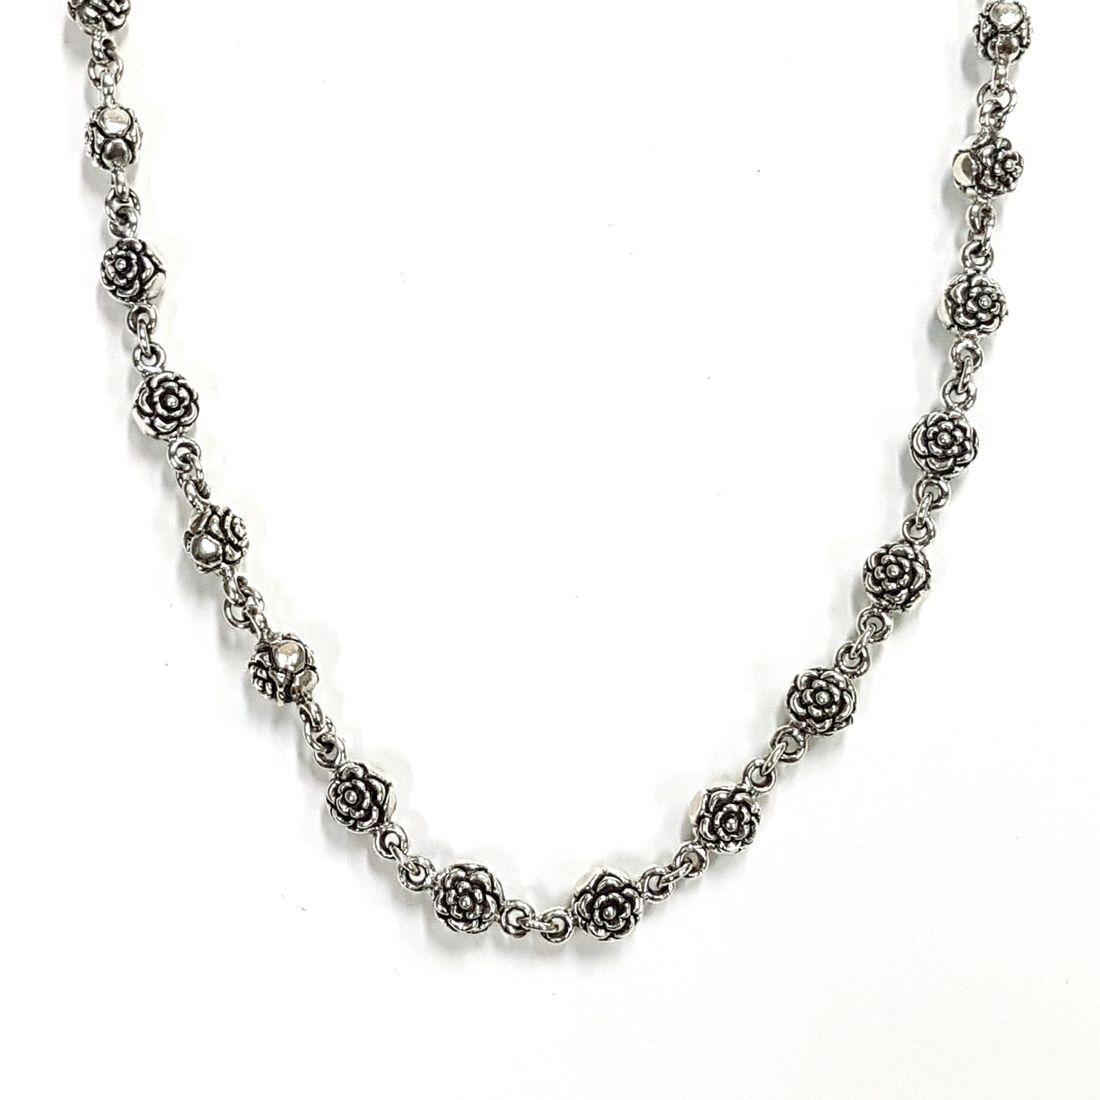 Solid Silver Roses Chain   available at Kazbah online and our Leicester City Centre Shop